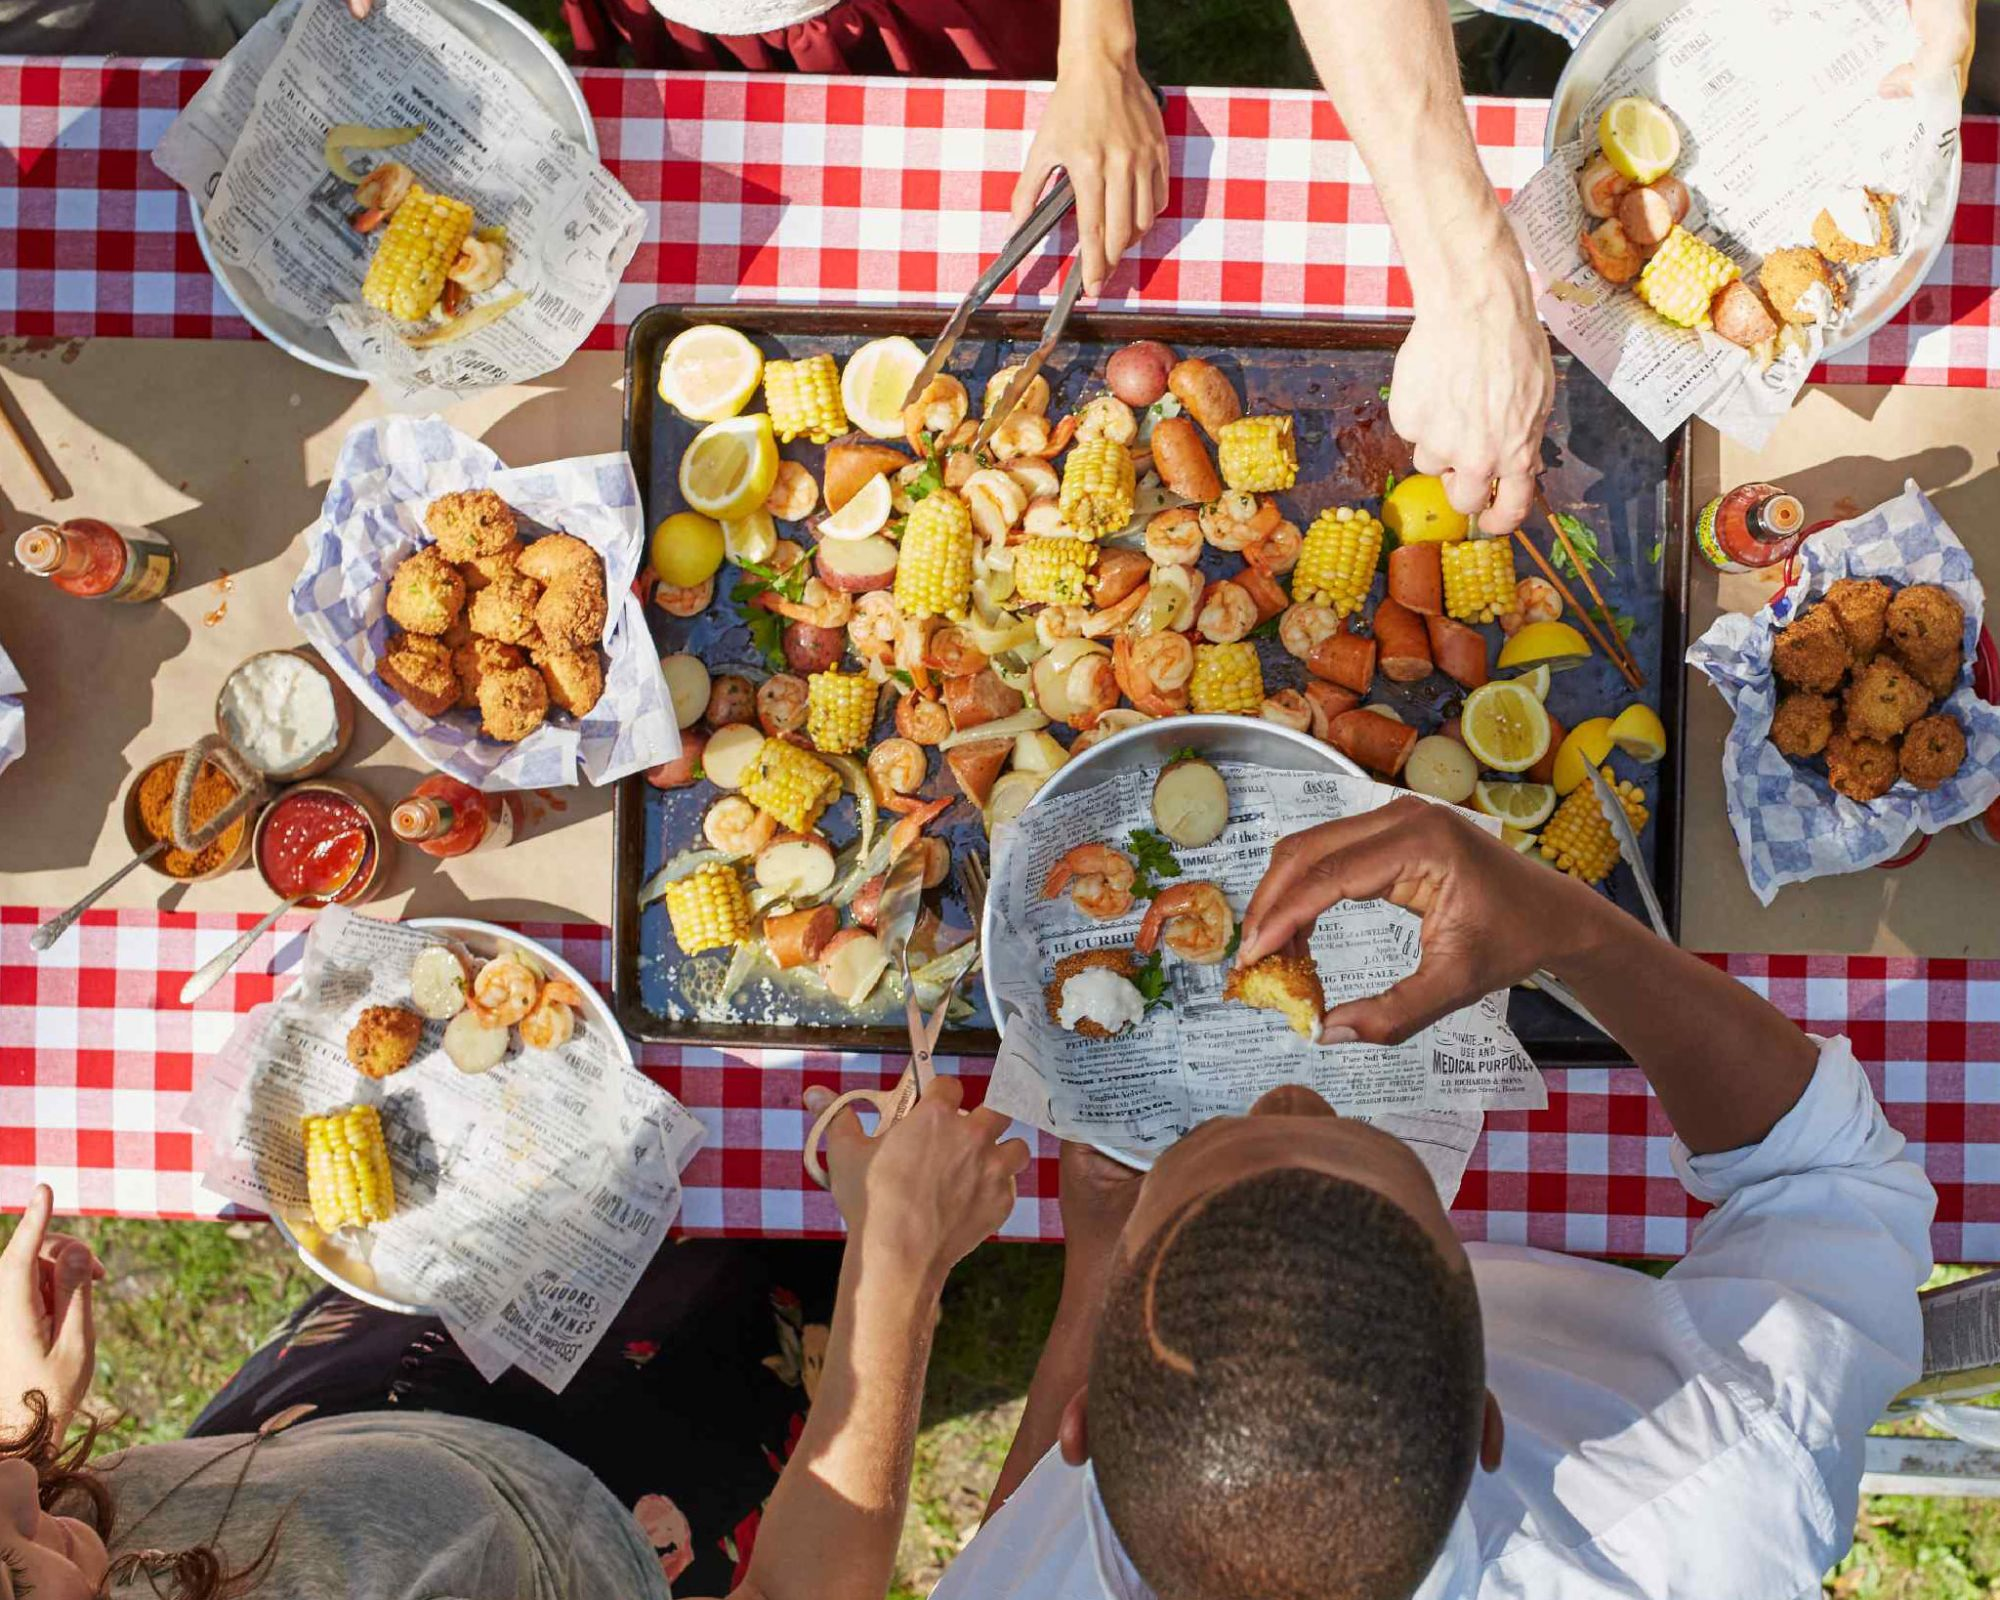 People reaching for shrimp boil on picnic table